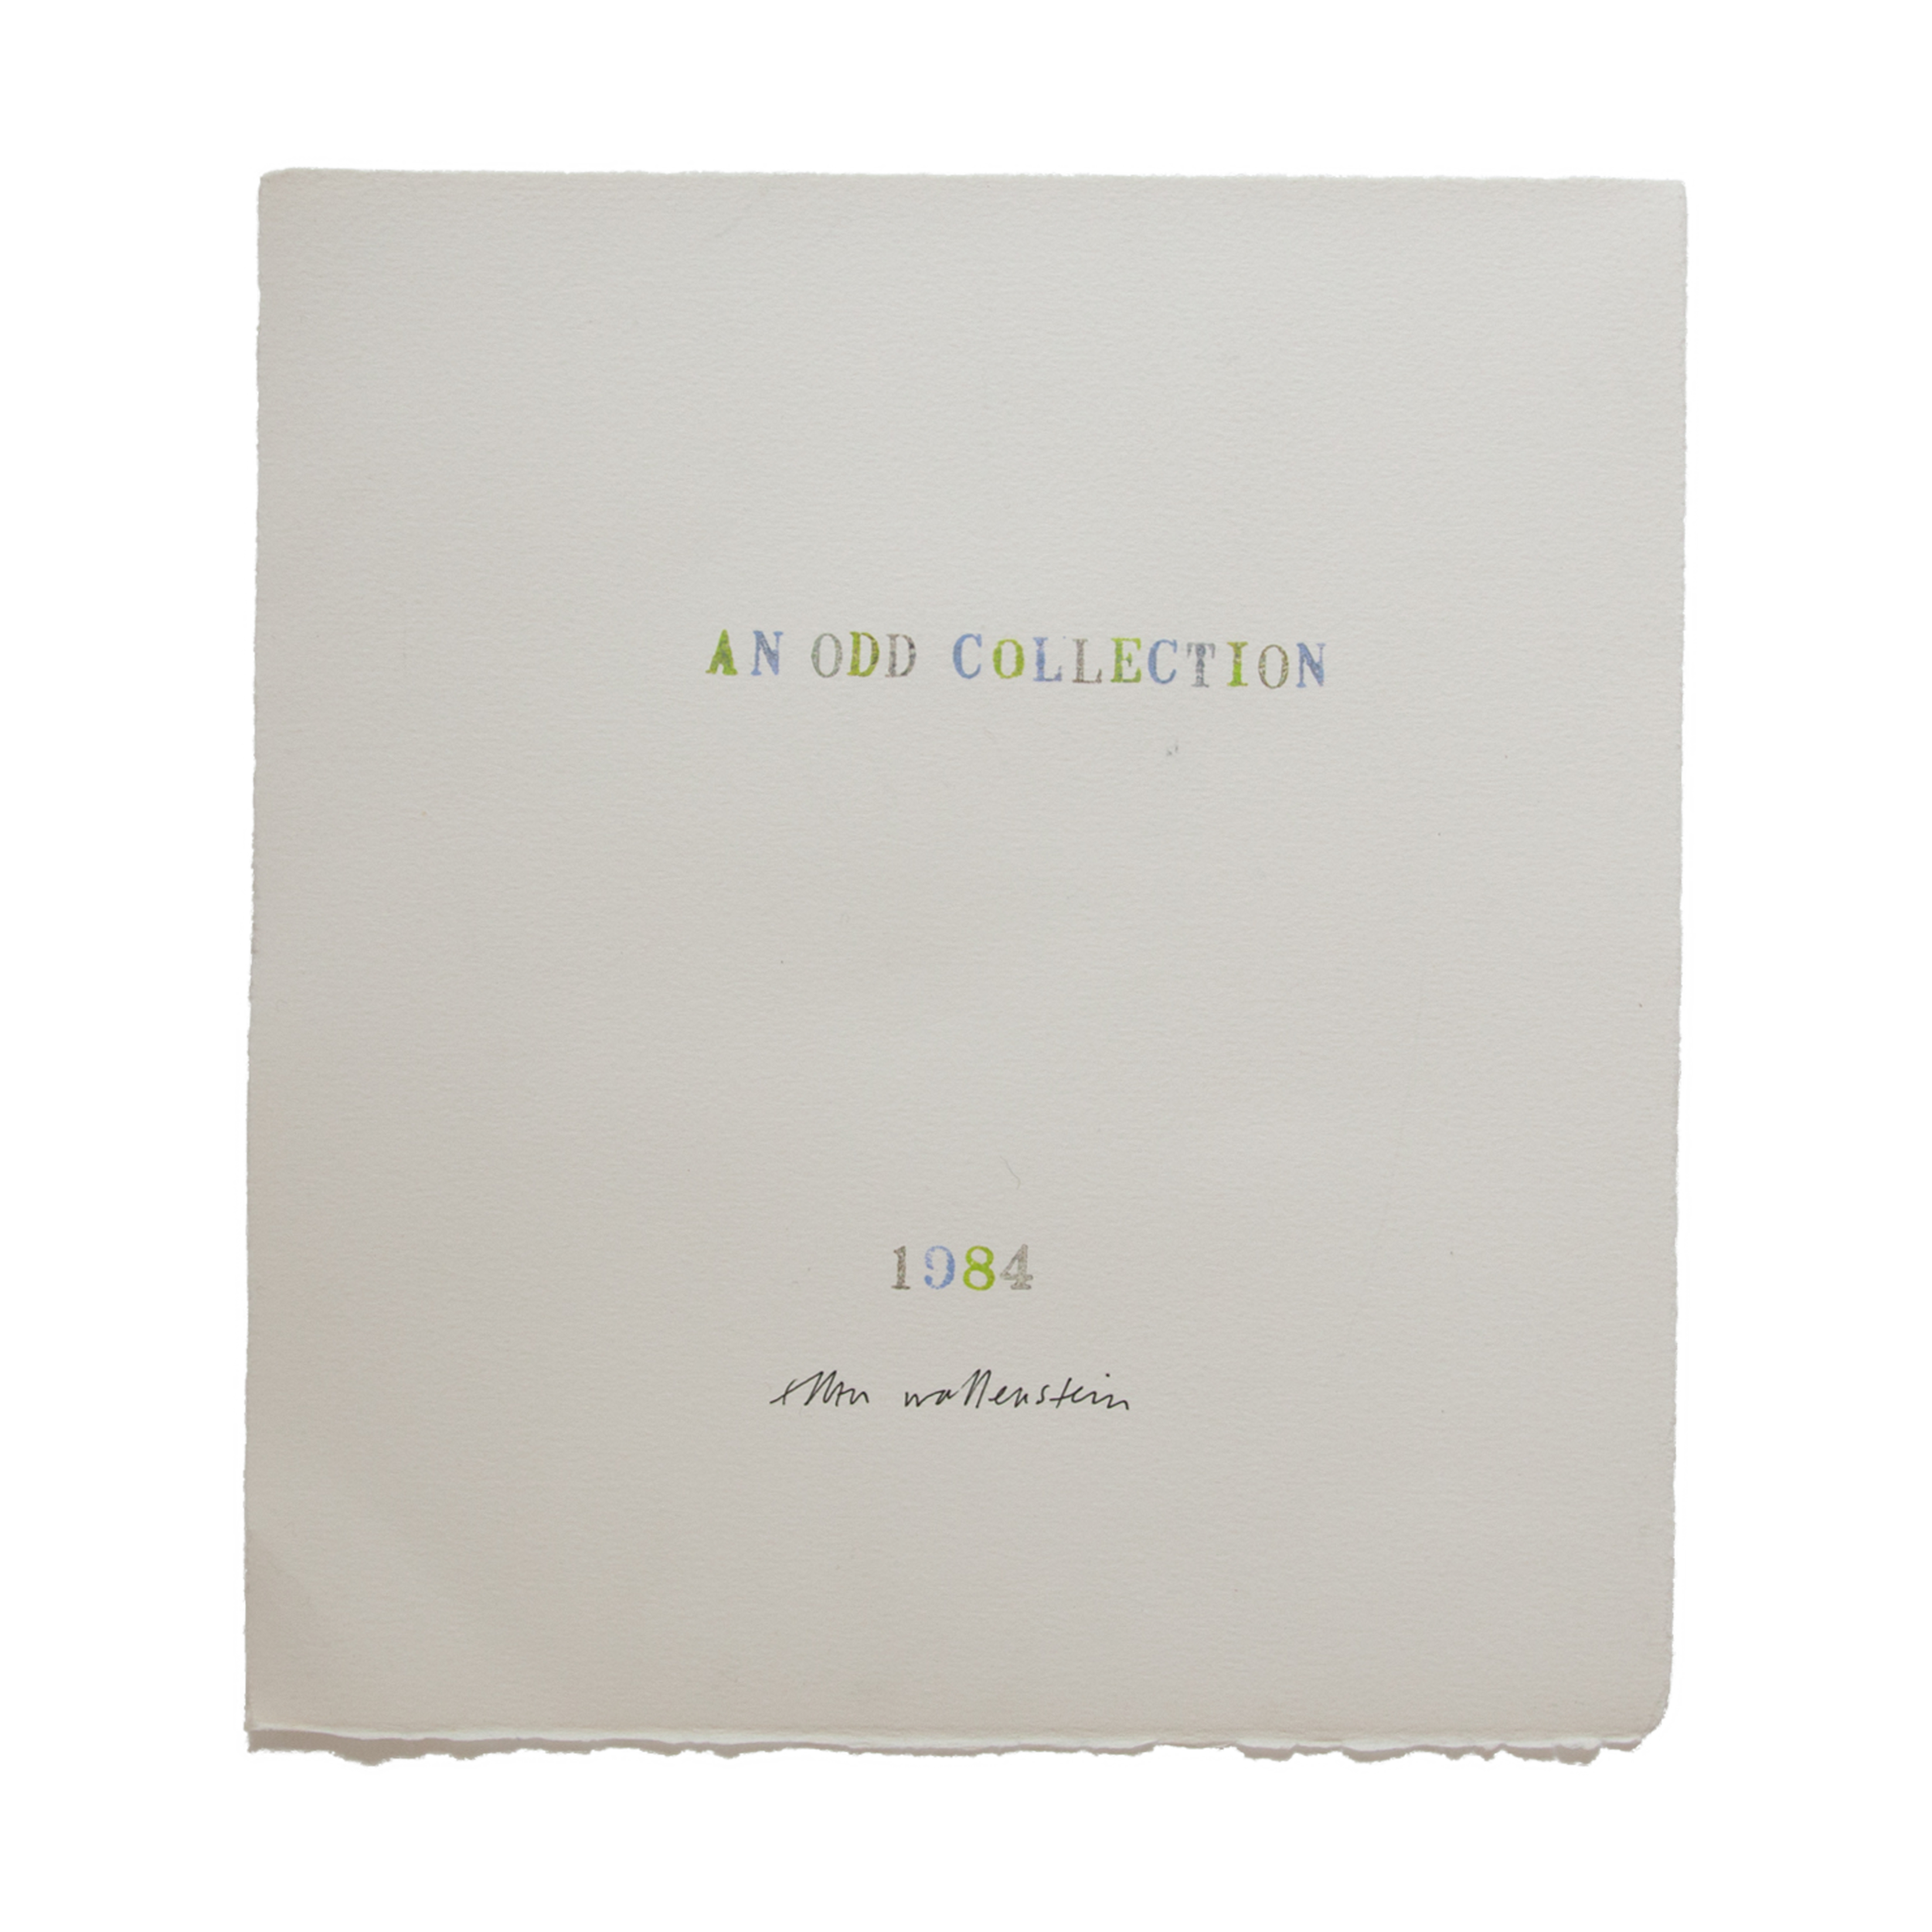 _0002_24_An-Odd-Collection-1984--title-page_-copy.png.png